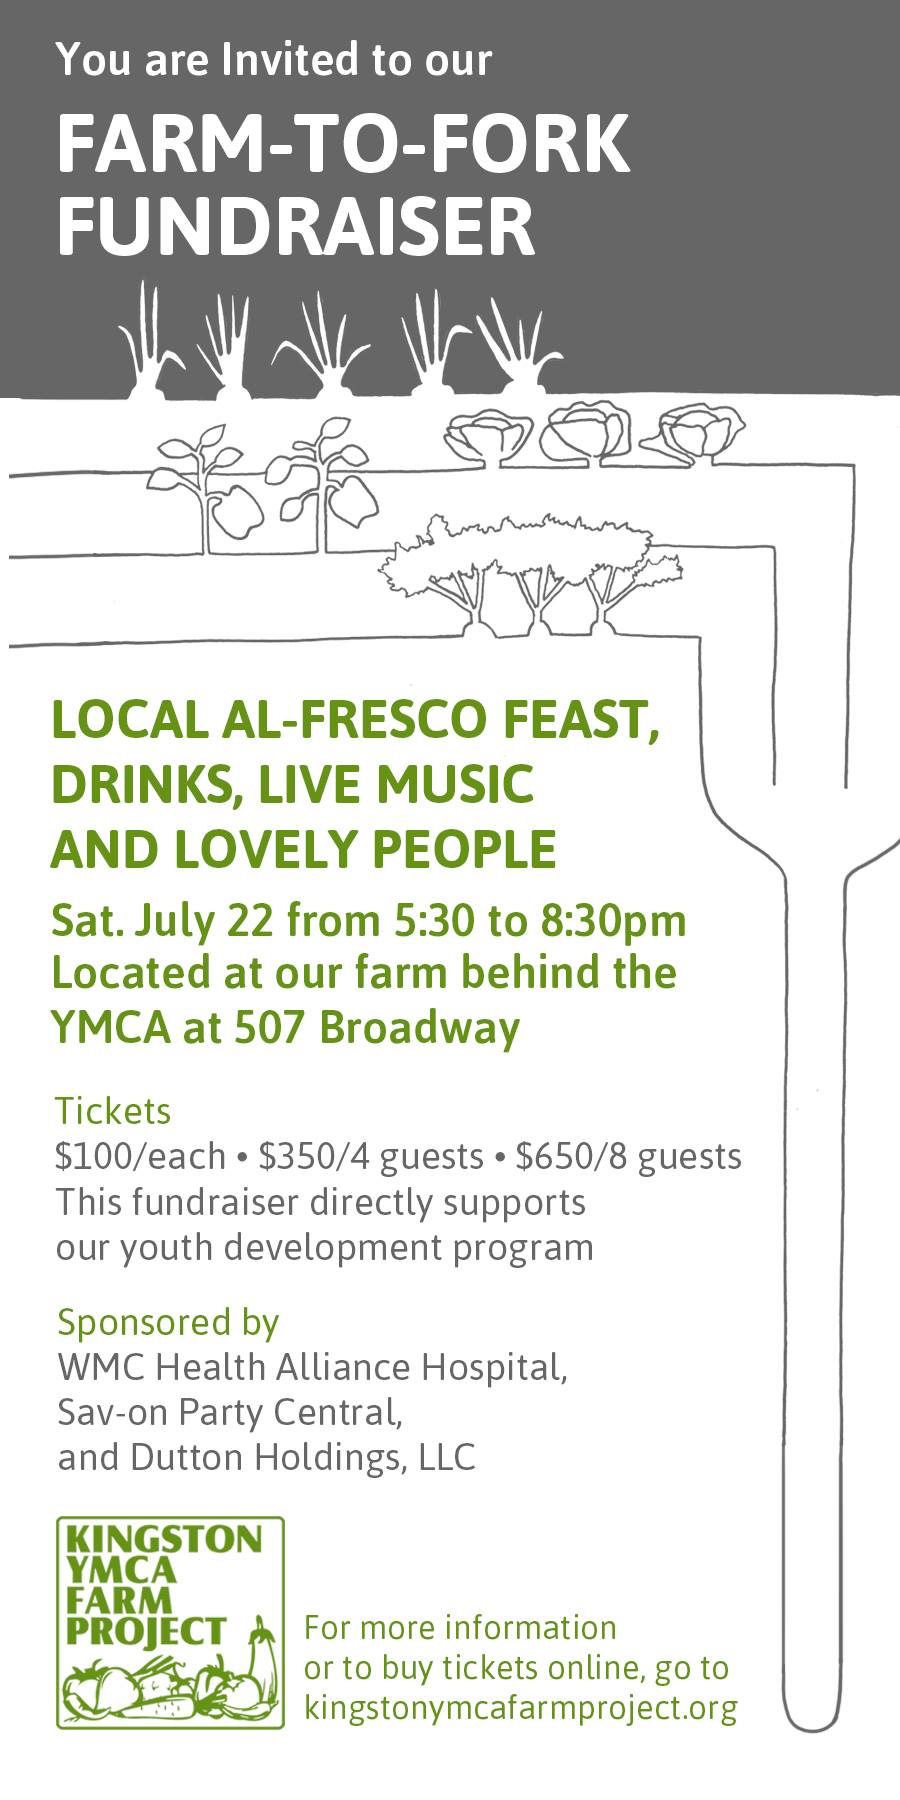 Kingston YMCA Farm Project Farm to Fork Dinner